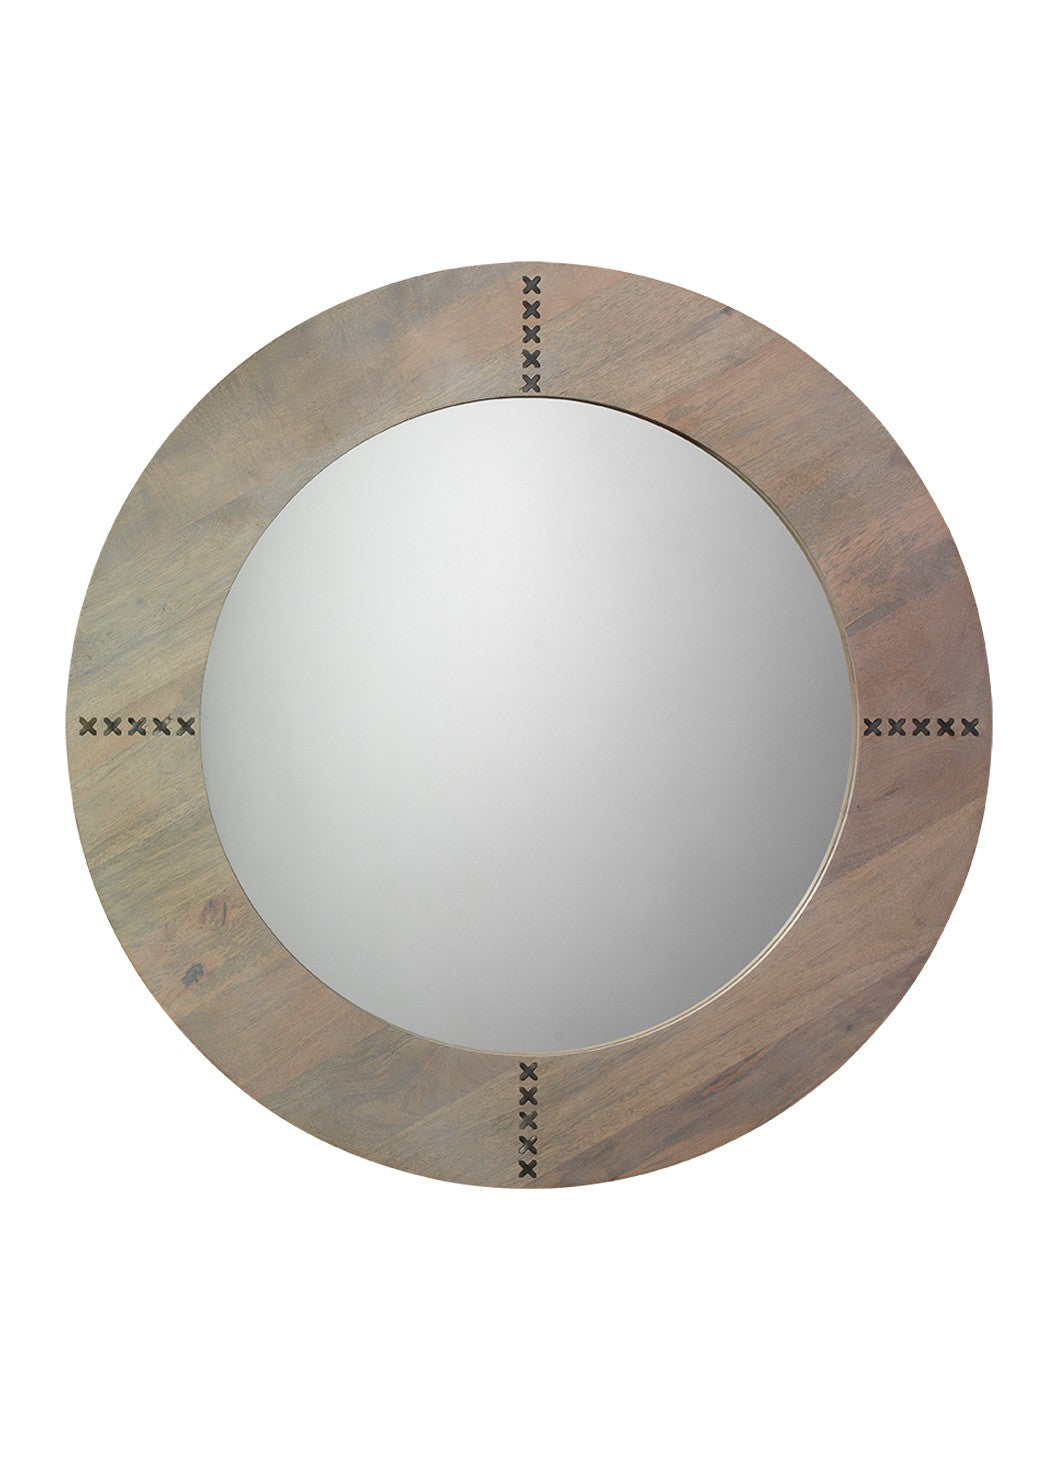 jamie young owen mirror grey round wood